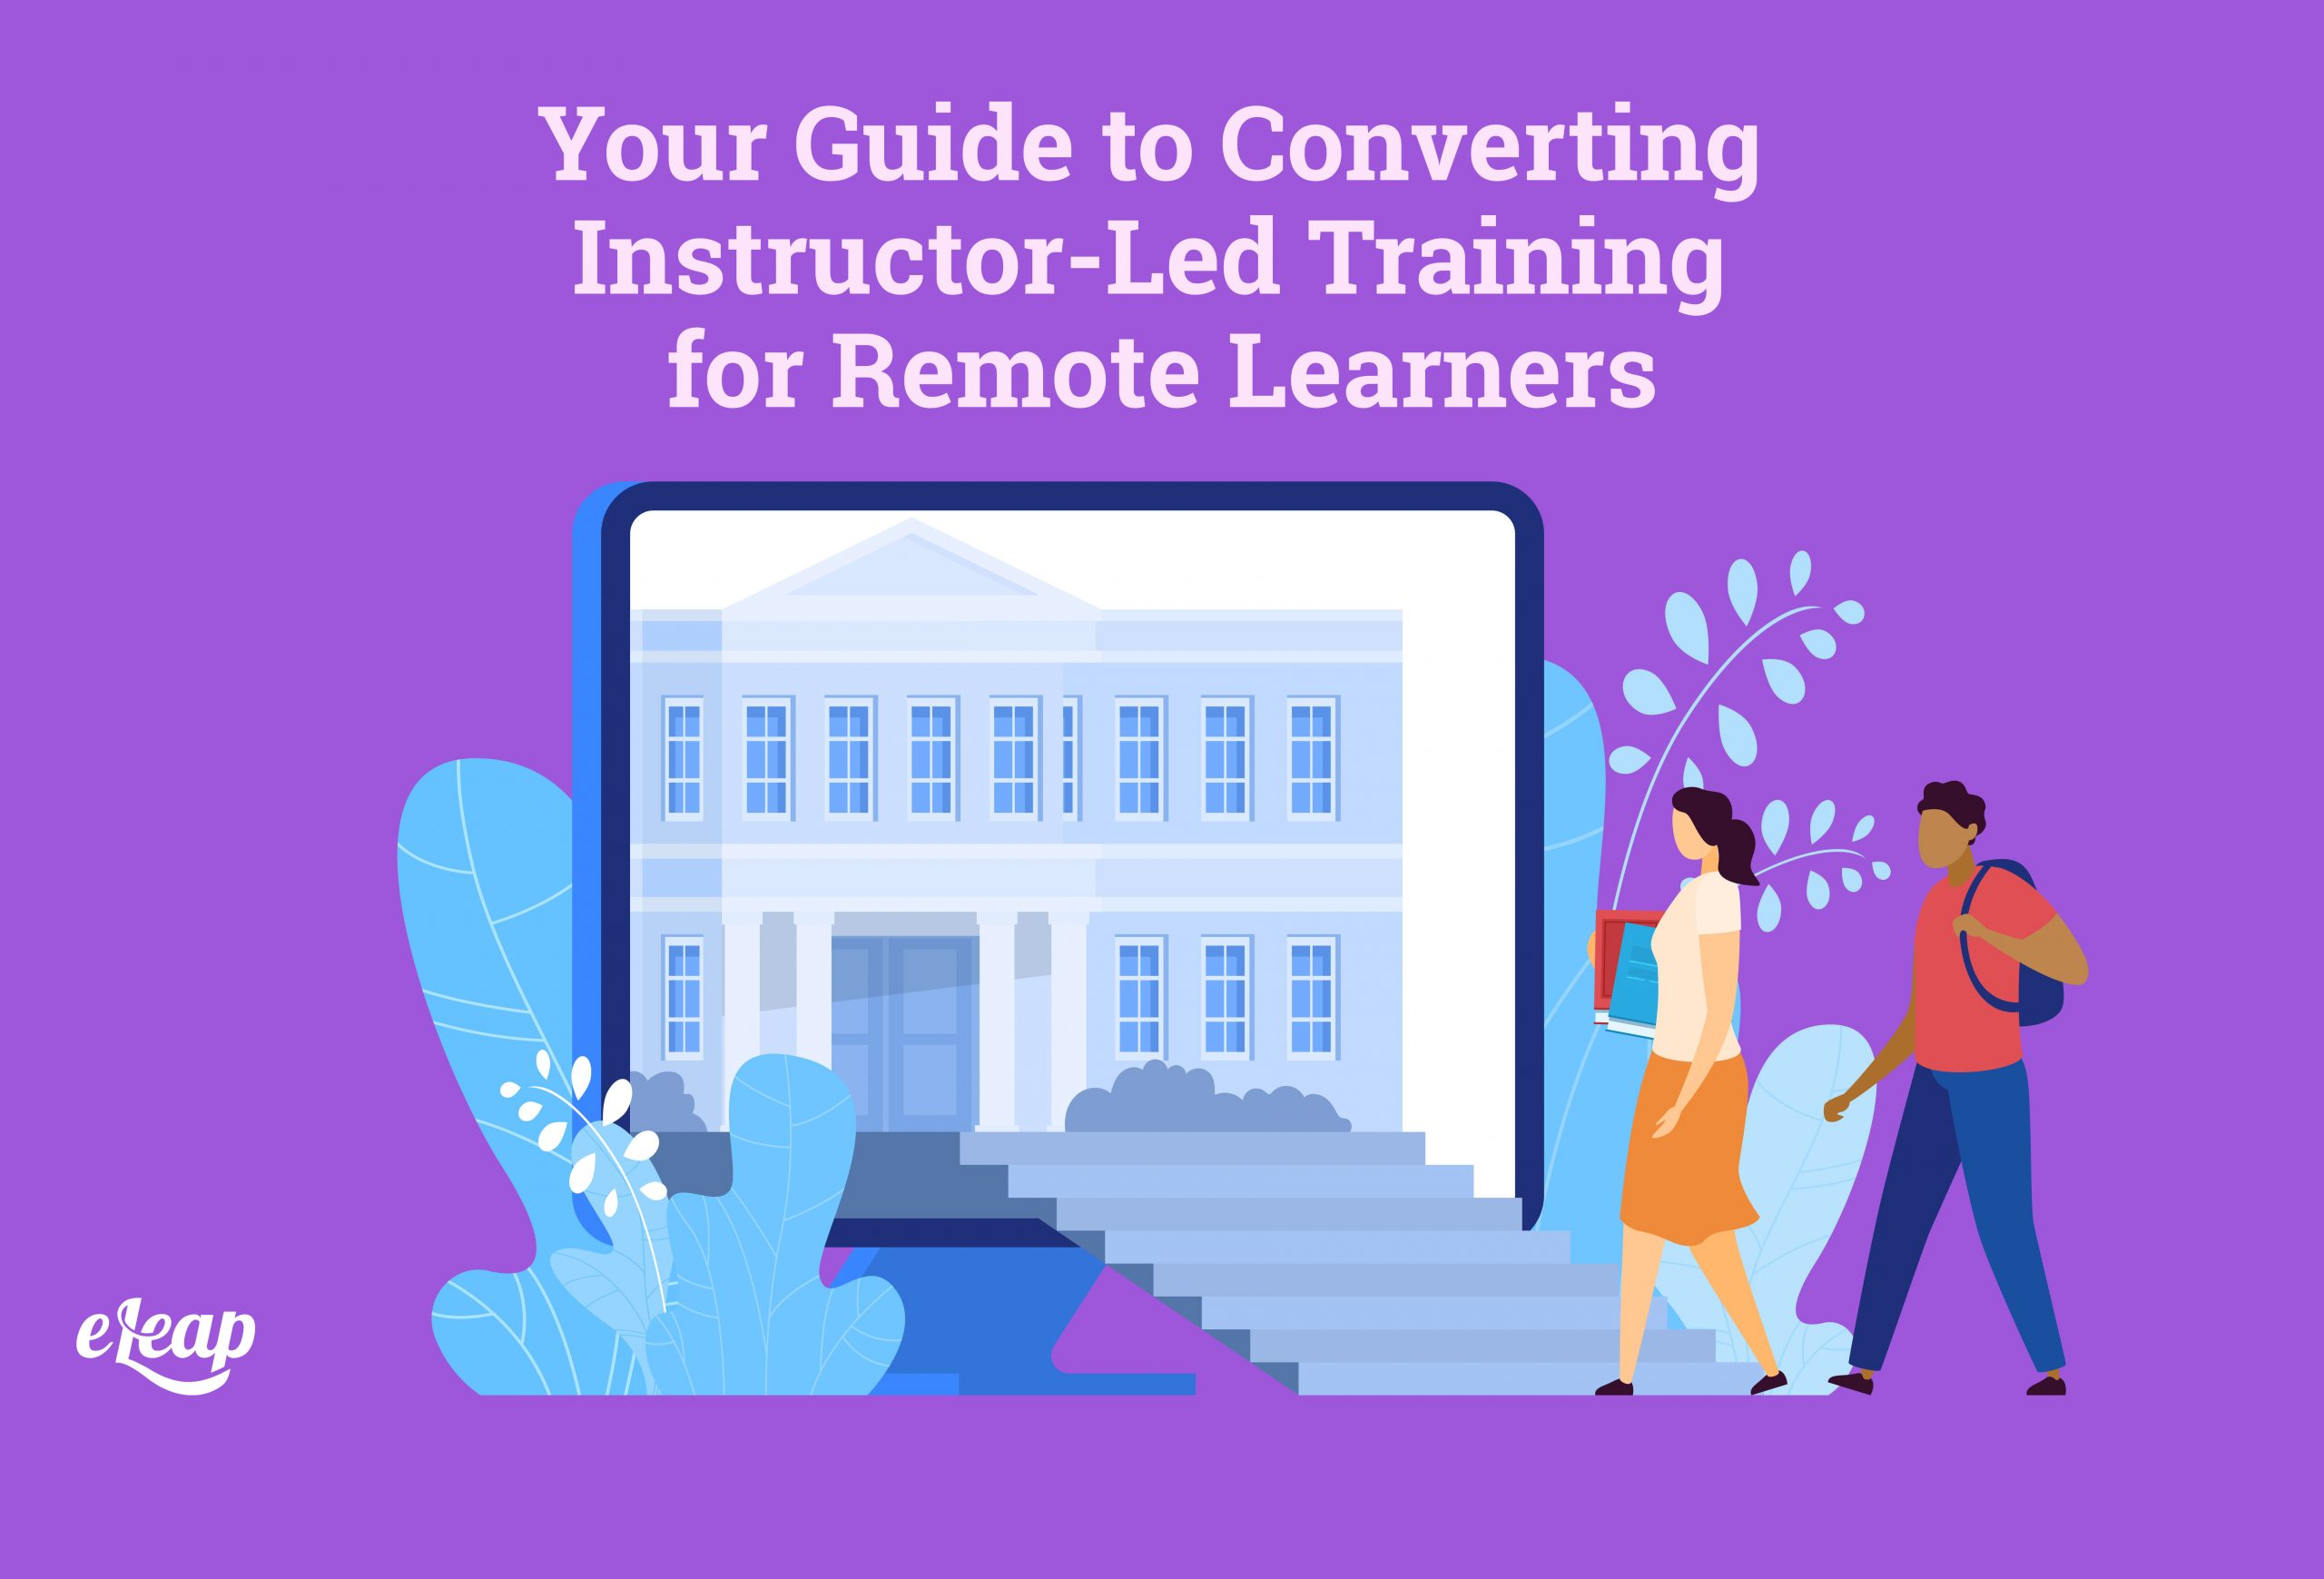 Your Guide to Converting Instructor-Led Training for Remote Learners